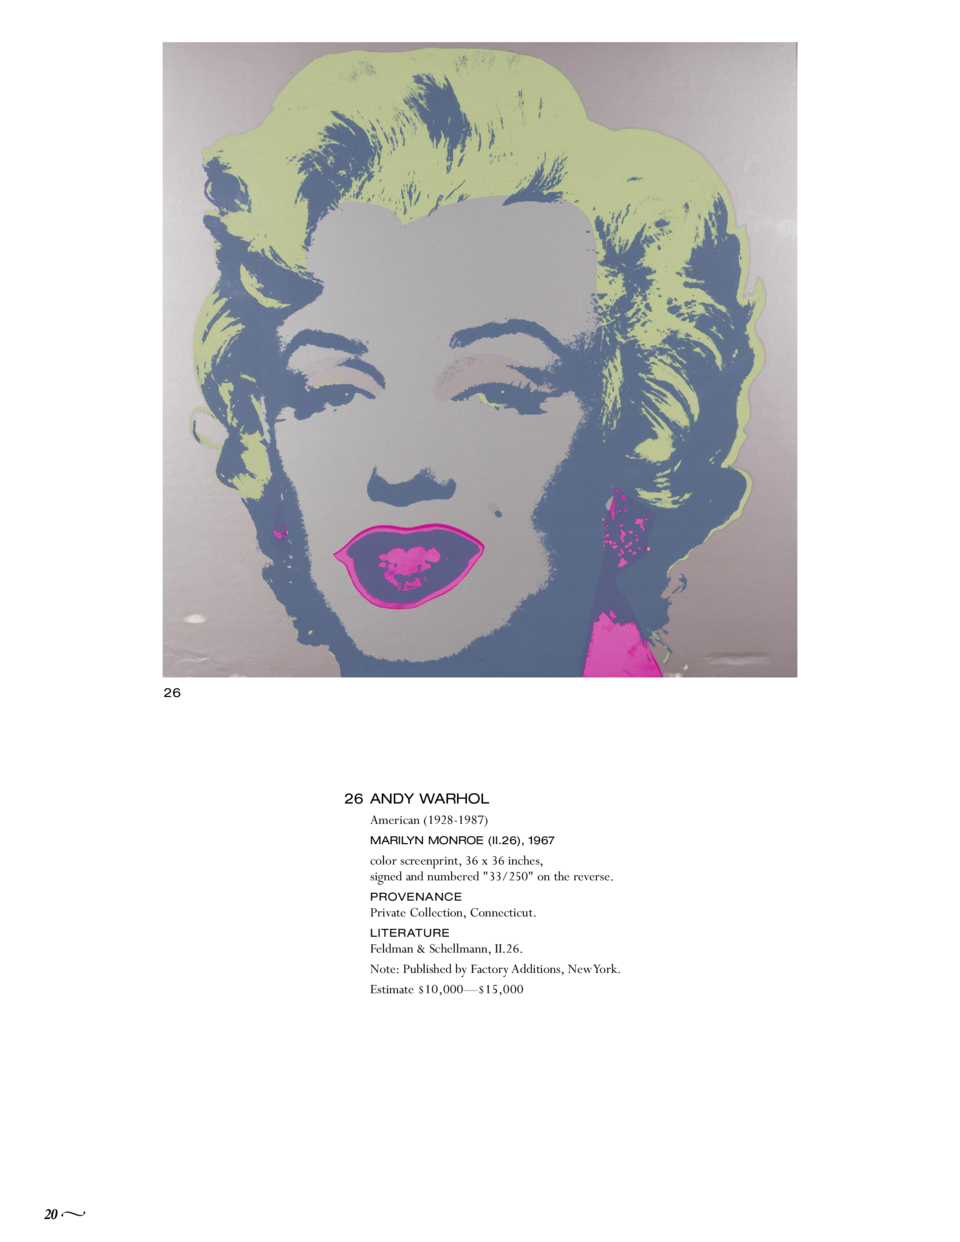 26  26 ANDY WARHOL American  1928-1987  MARILYN MONROE  II.26 , 1967  color screenprint, 36 x 36 inches, signed and number...